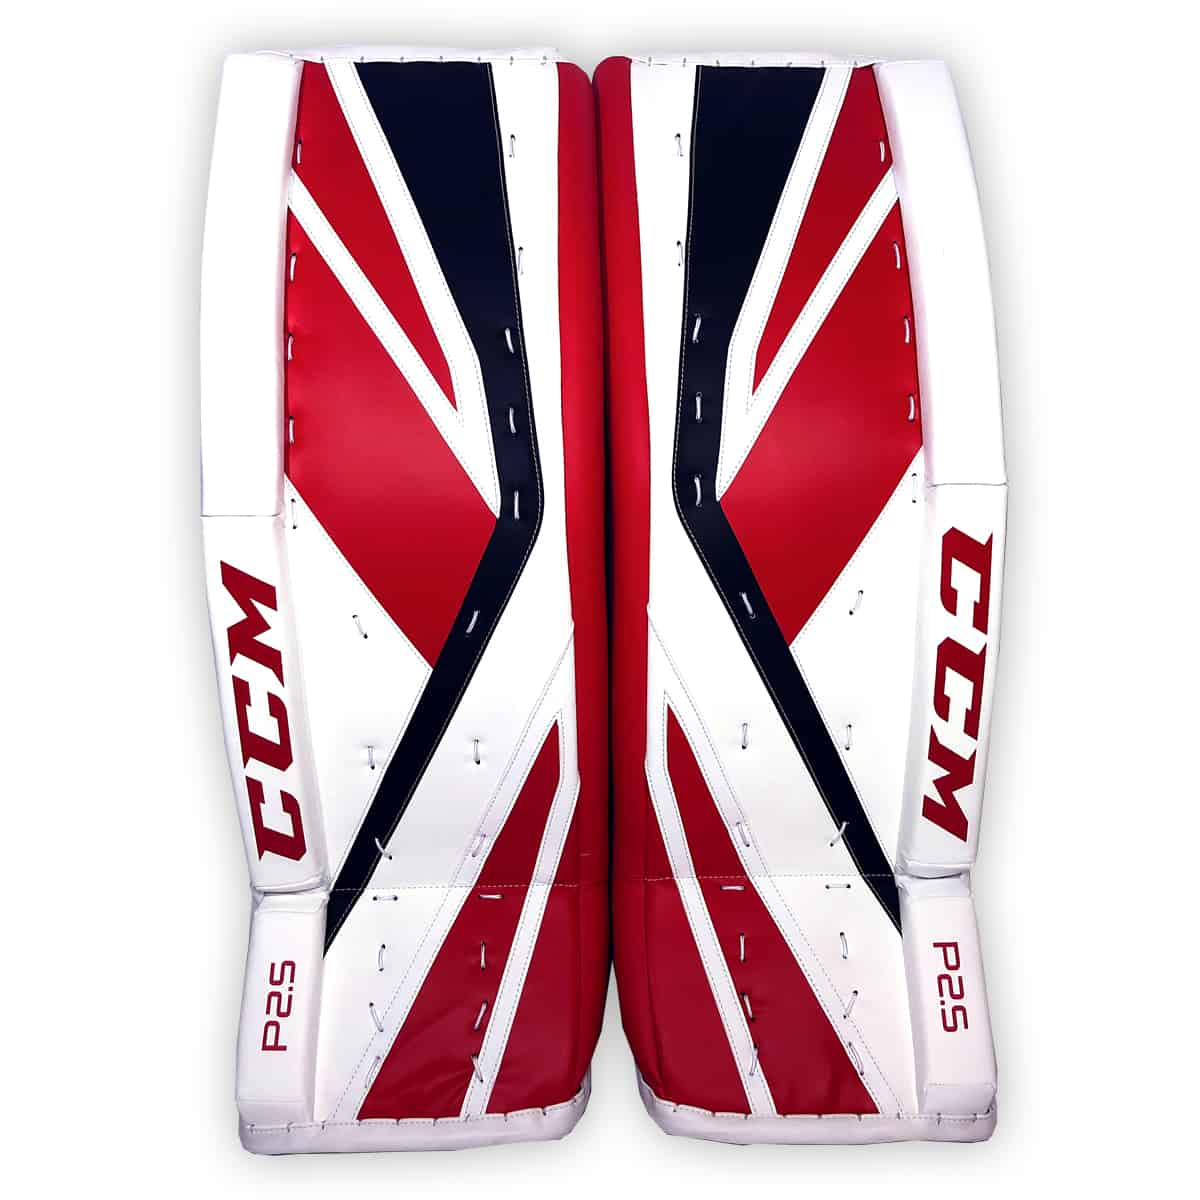 c1d538446fc CCM Premier P2.5 Senior Goalie Pads in Chicago colors